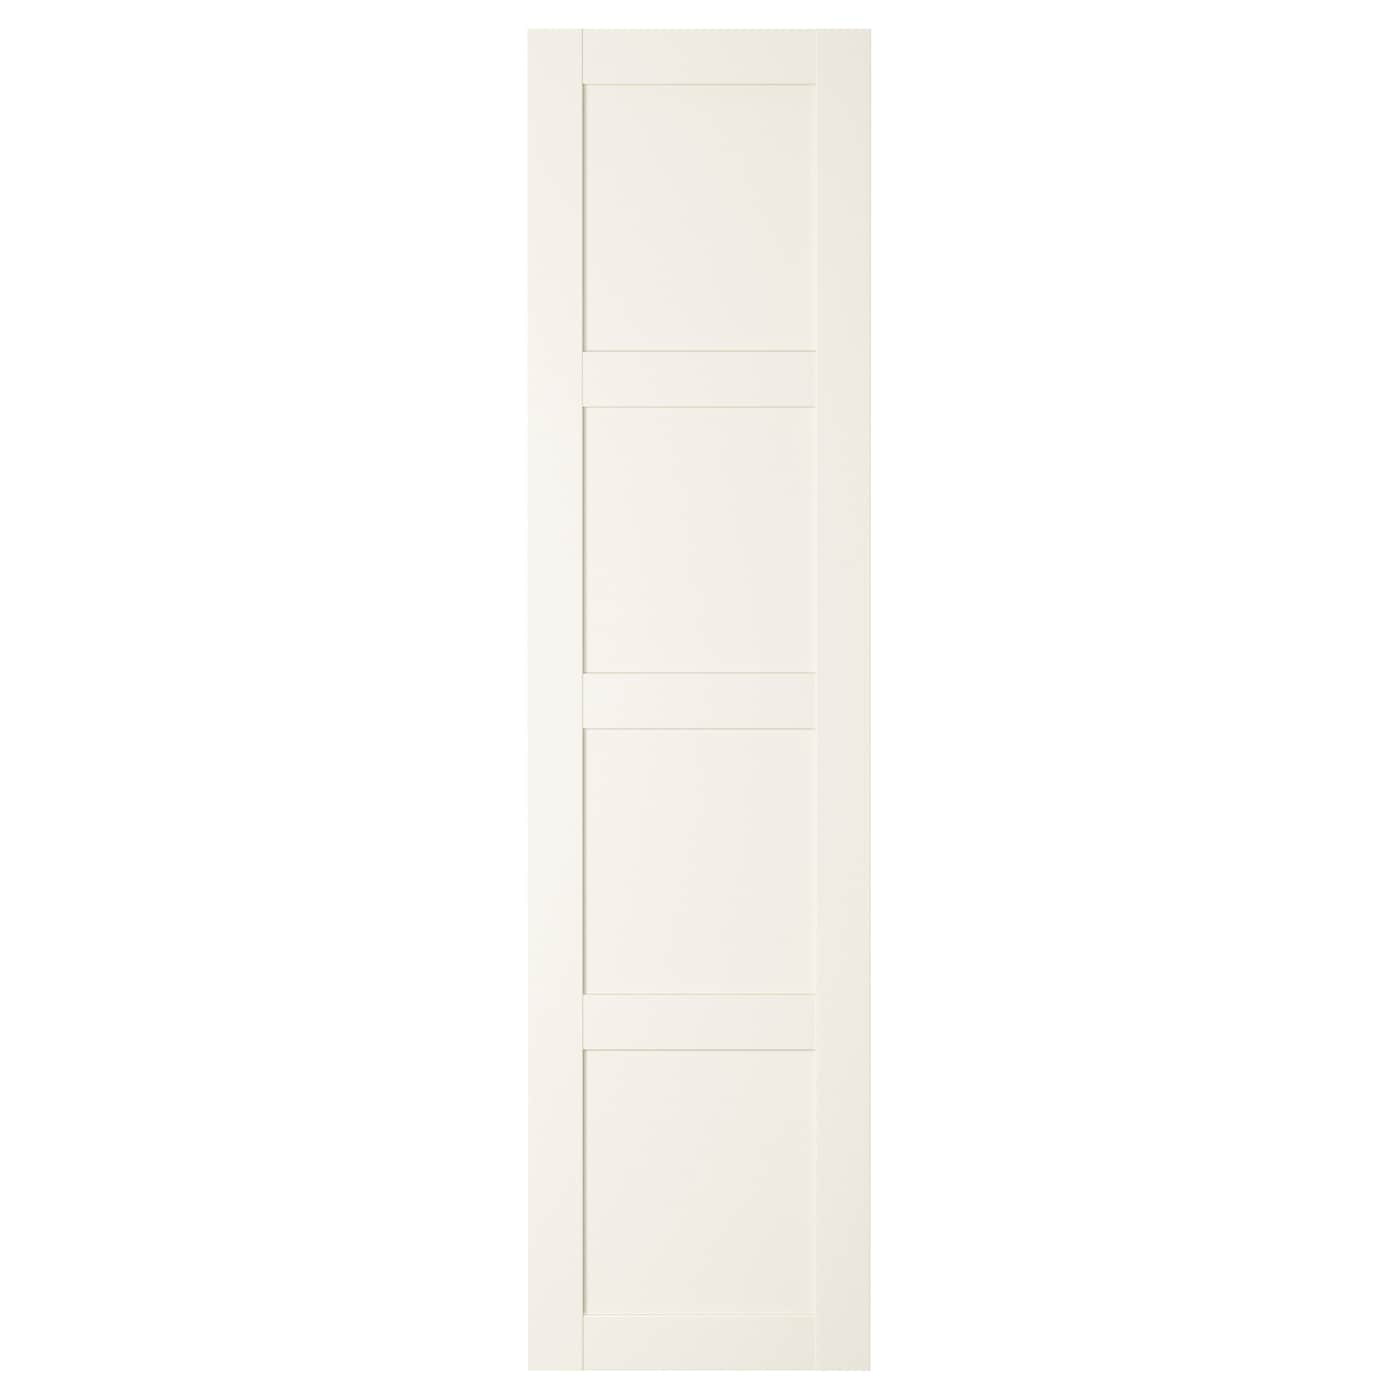 bergsbo porte blanc 50 x 195 cm ikea. Black Bedroom Furniture Sets. Home Design Ideas